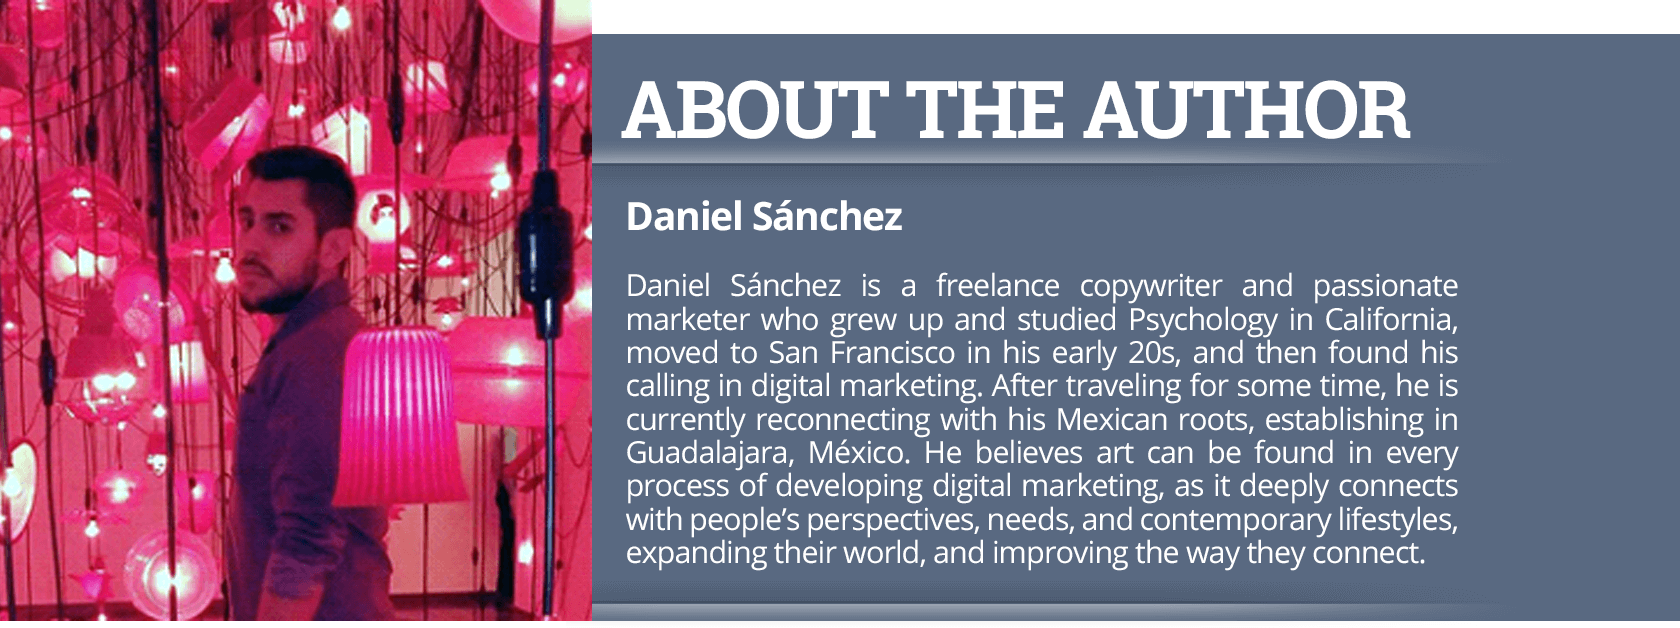 About The Author - Daniel Sanchez